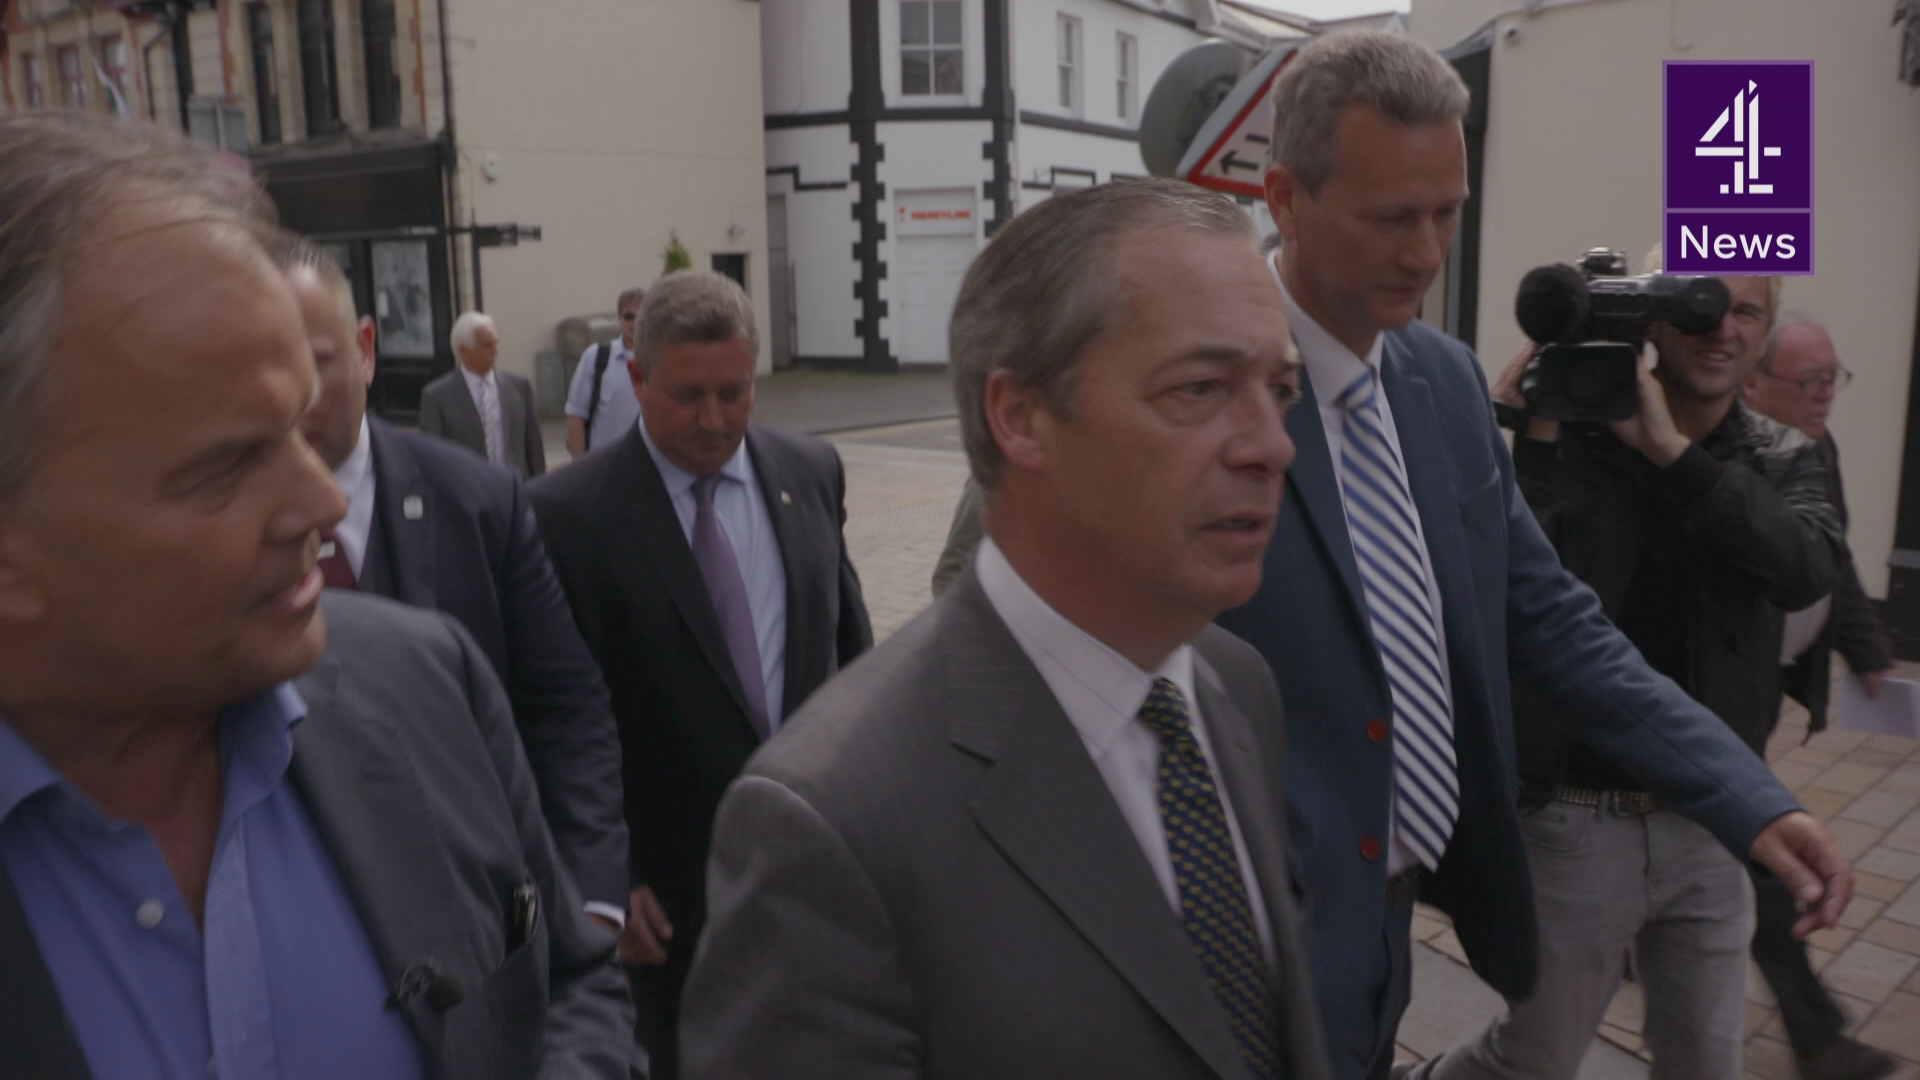 Brexit Party Lifts Ban On Press Access For Channel 4 News